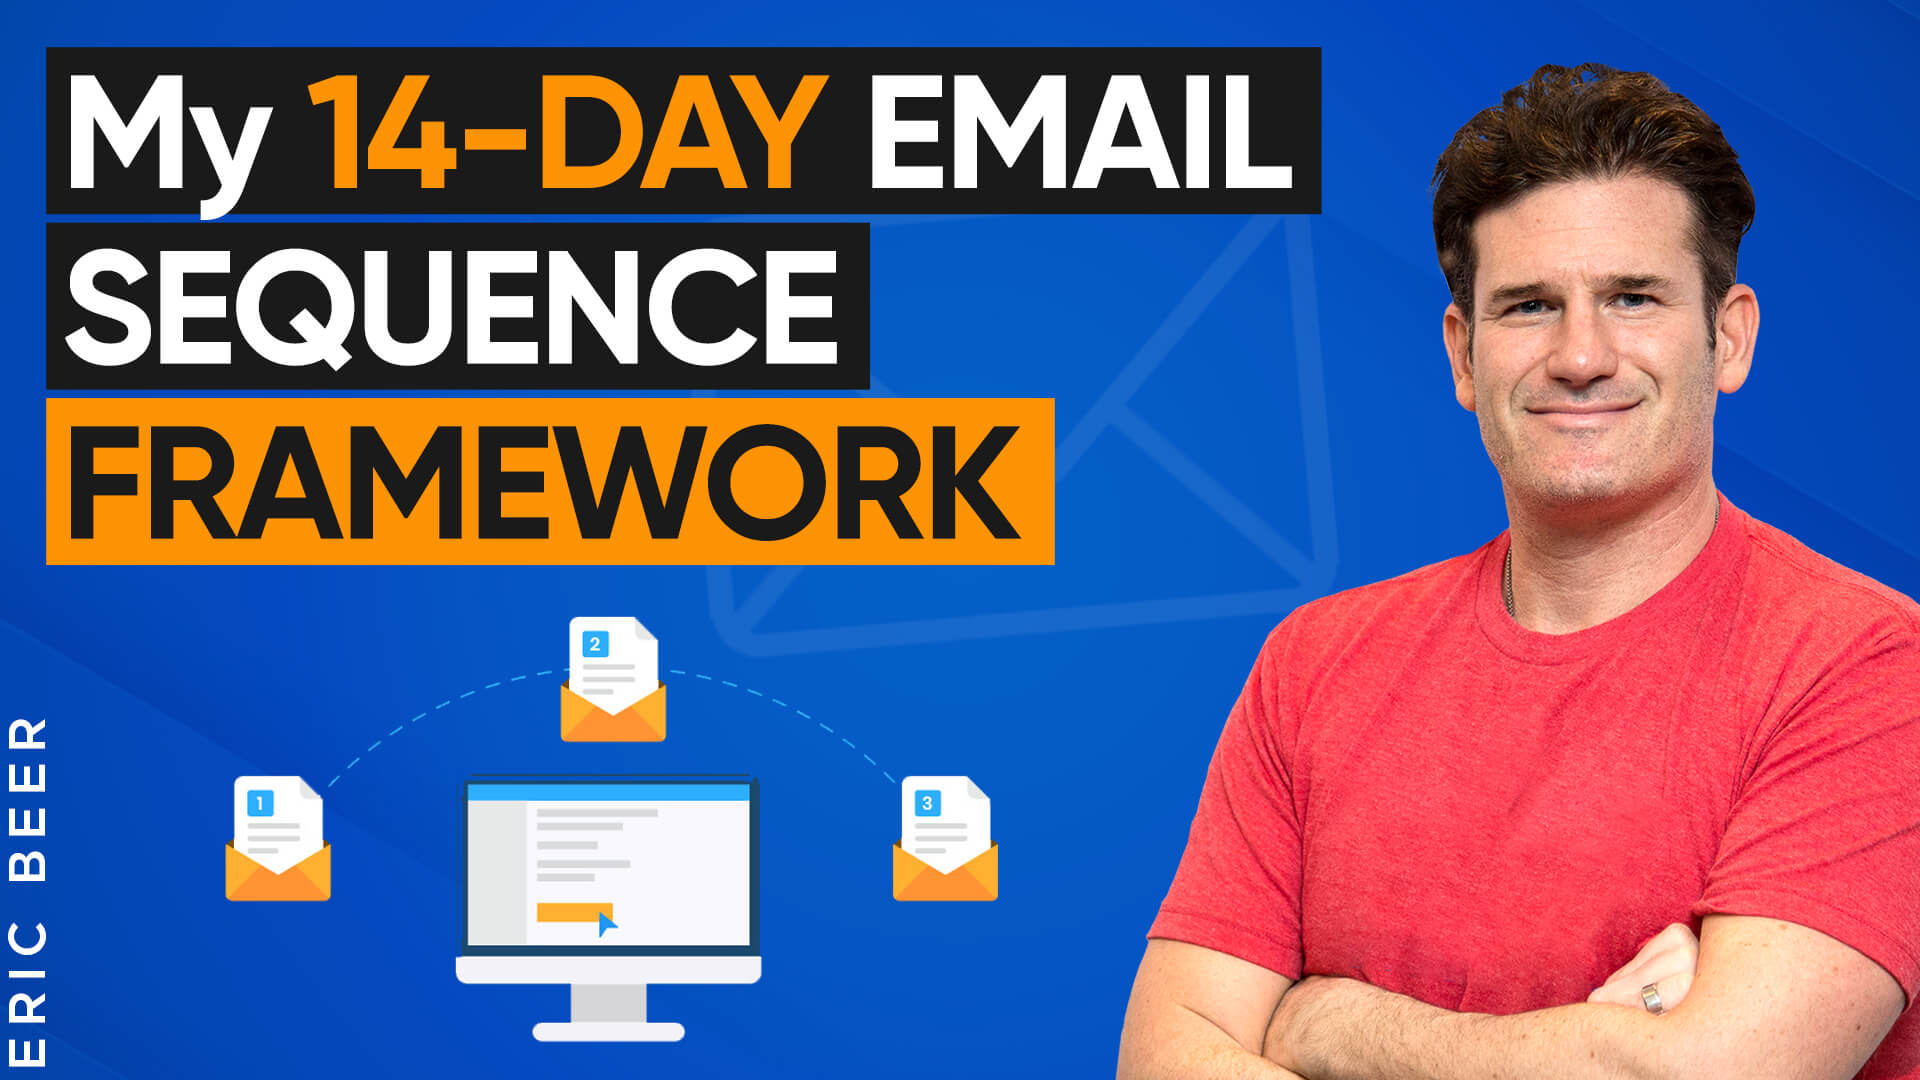 My #1 Secret About Lead Generation: A 14-Day Email Sequence Framework That Converts Leads Into Sales with Eric Beer